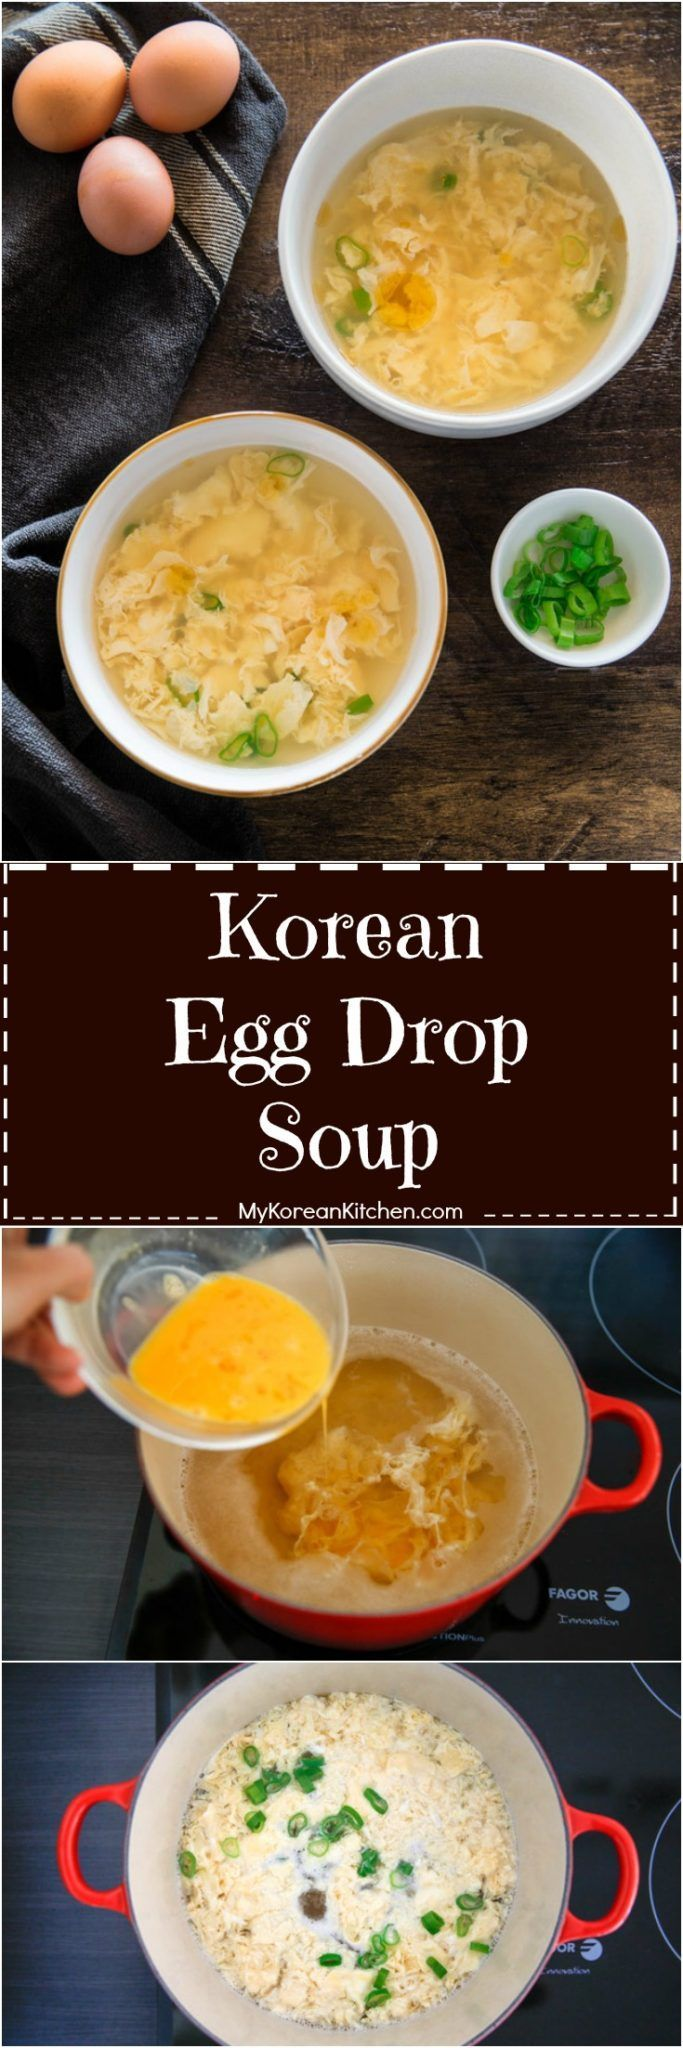 Korean Egg Drop Soup